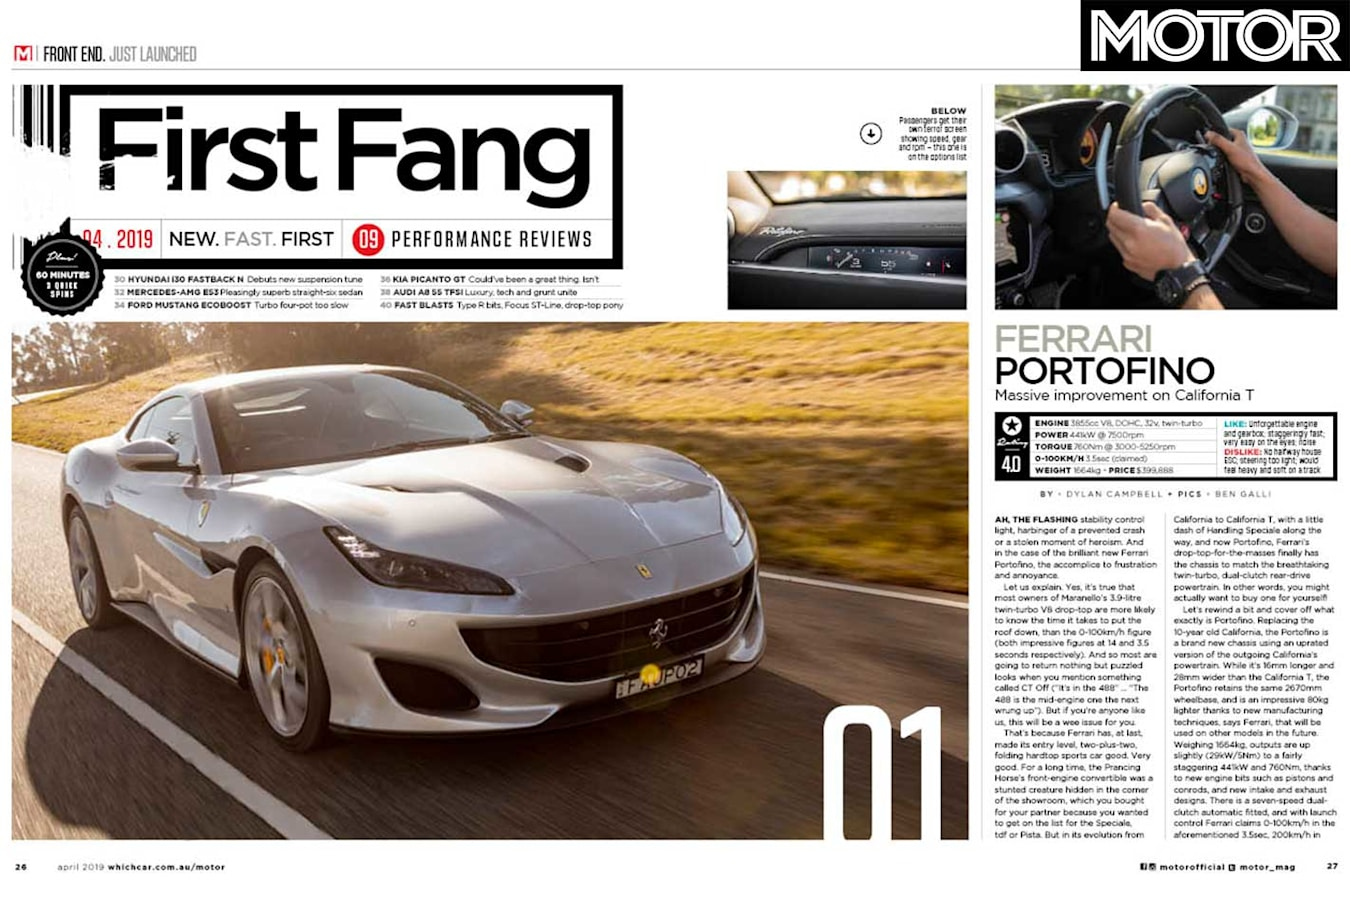 MOTOR Magazine April 2019 Issue FIRST DRIVES Jpg